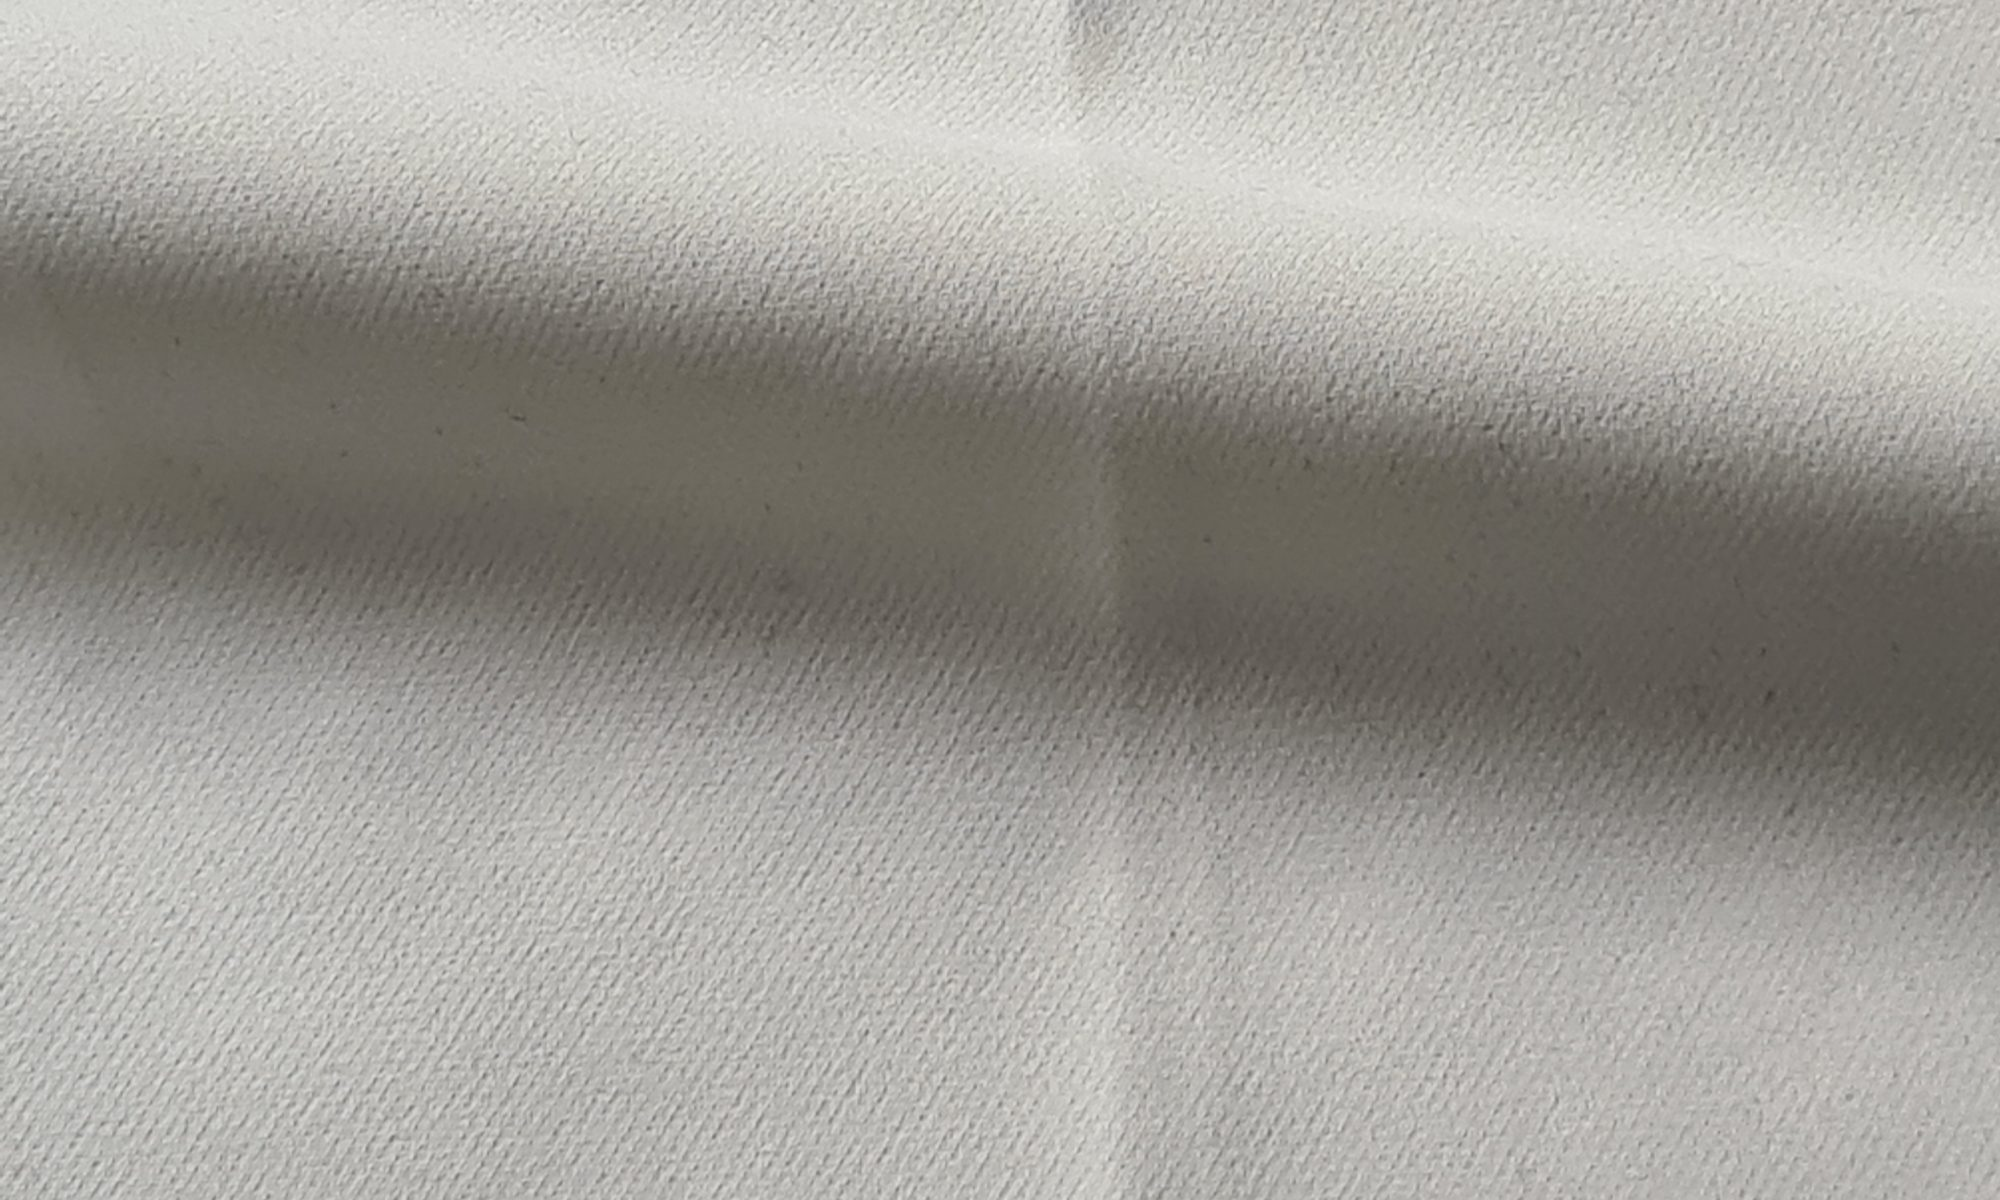 7601 stretch scuba WIDTH cm145 WEIGHT gr300 - gr206 square meter - COMPOSITION 95 Polyester 5 Elastan - 984mts